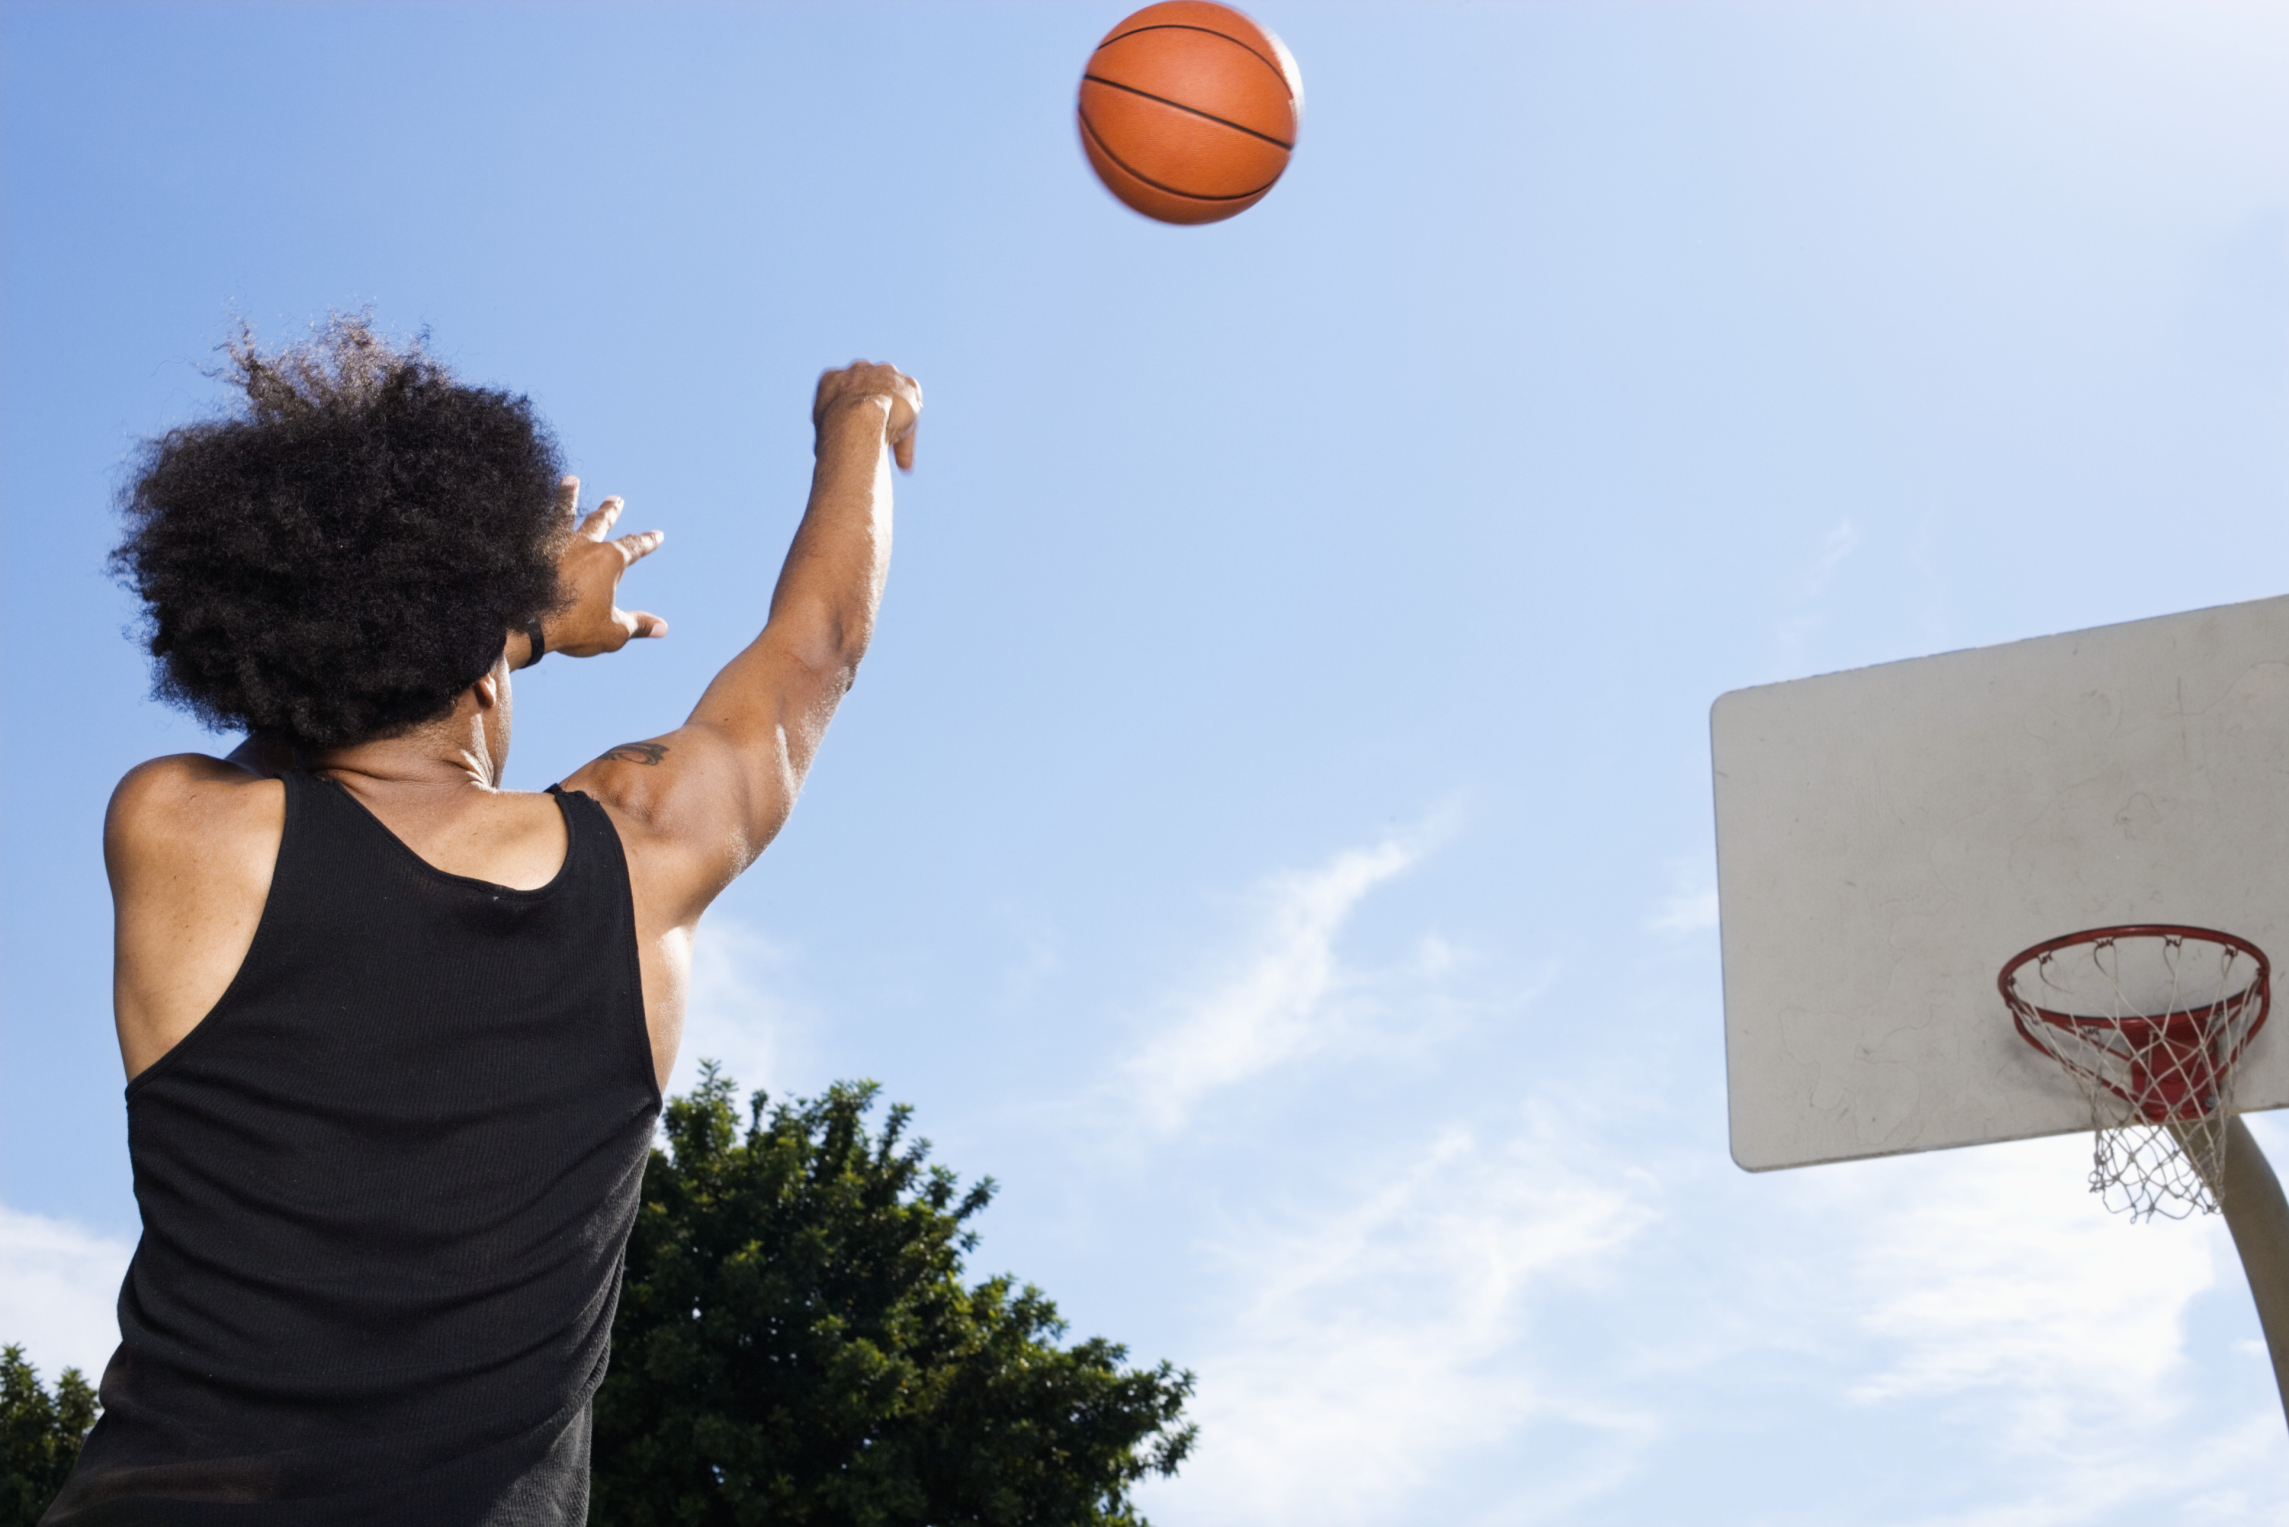 The Physics of Shooting a Basketball